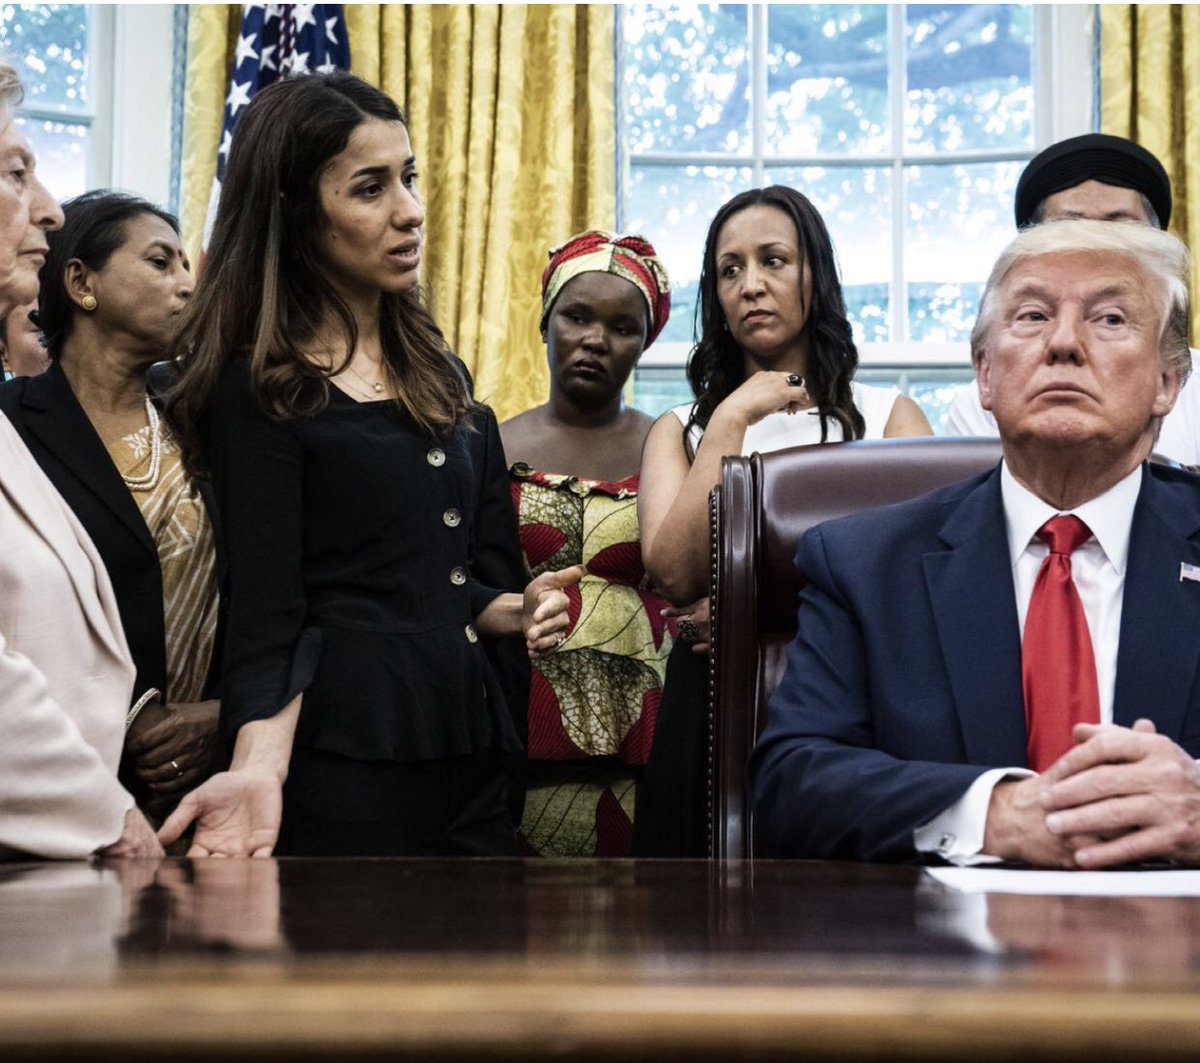 He looks like he's trying to decide between KFC or a Big Mac while she is telling him her whole family was murdered! Fuck Trump, Fuck the Republicans and Fuck MAGA! <br>http://pic.twitter.com/bZnYmB0vTc